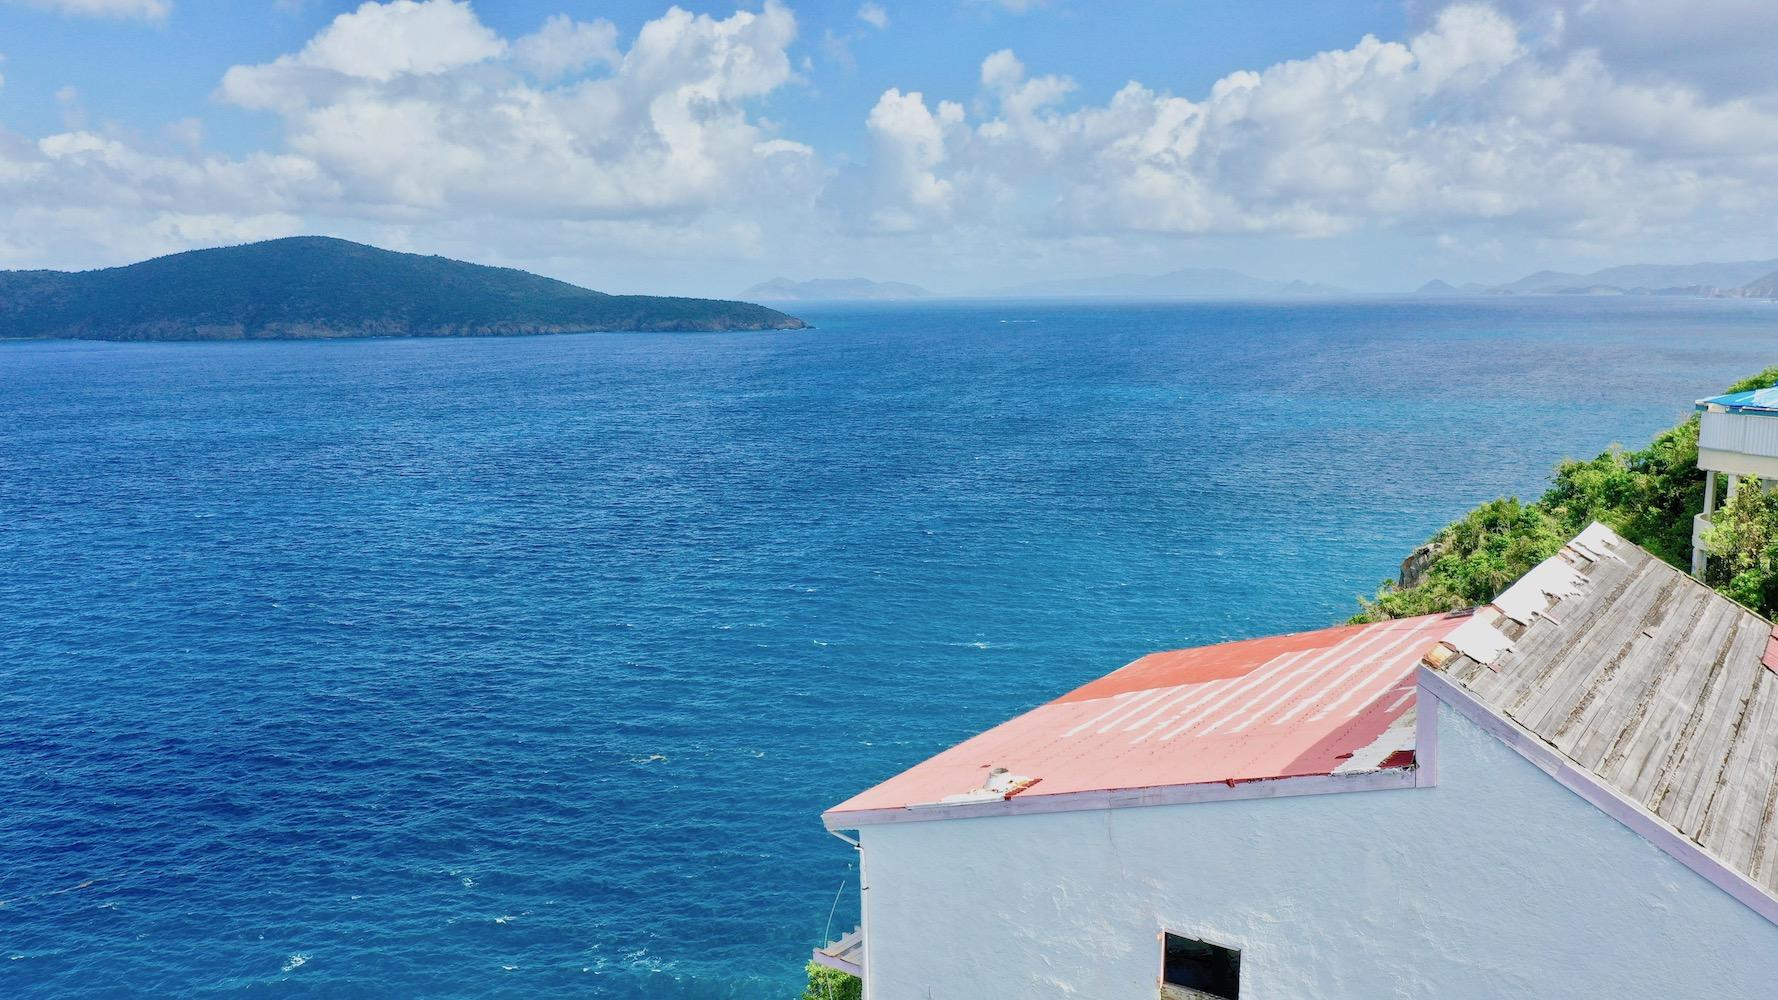 Multi-Family Home for Sale at 9-1-26 Peterborg GNS 9-1-26 Peterborg GNS St Thomas, Virgin Islands 00802 United States Virgin Islands